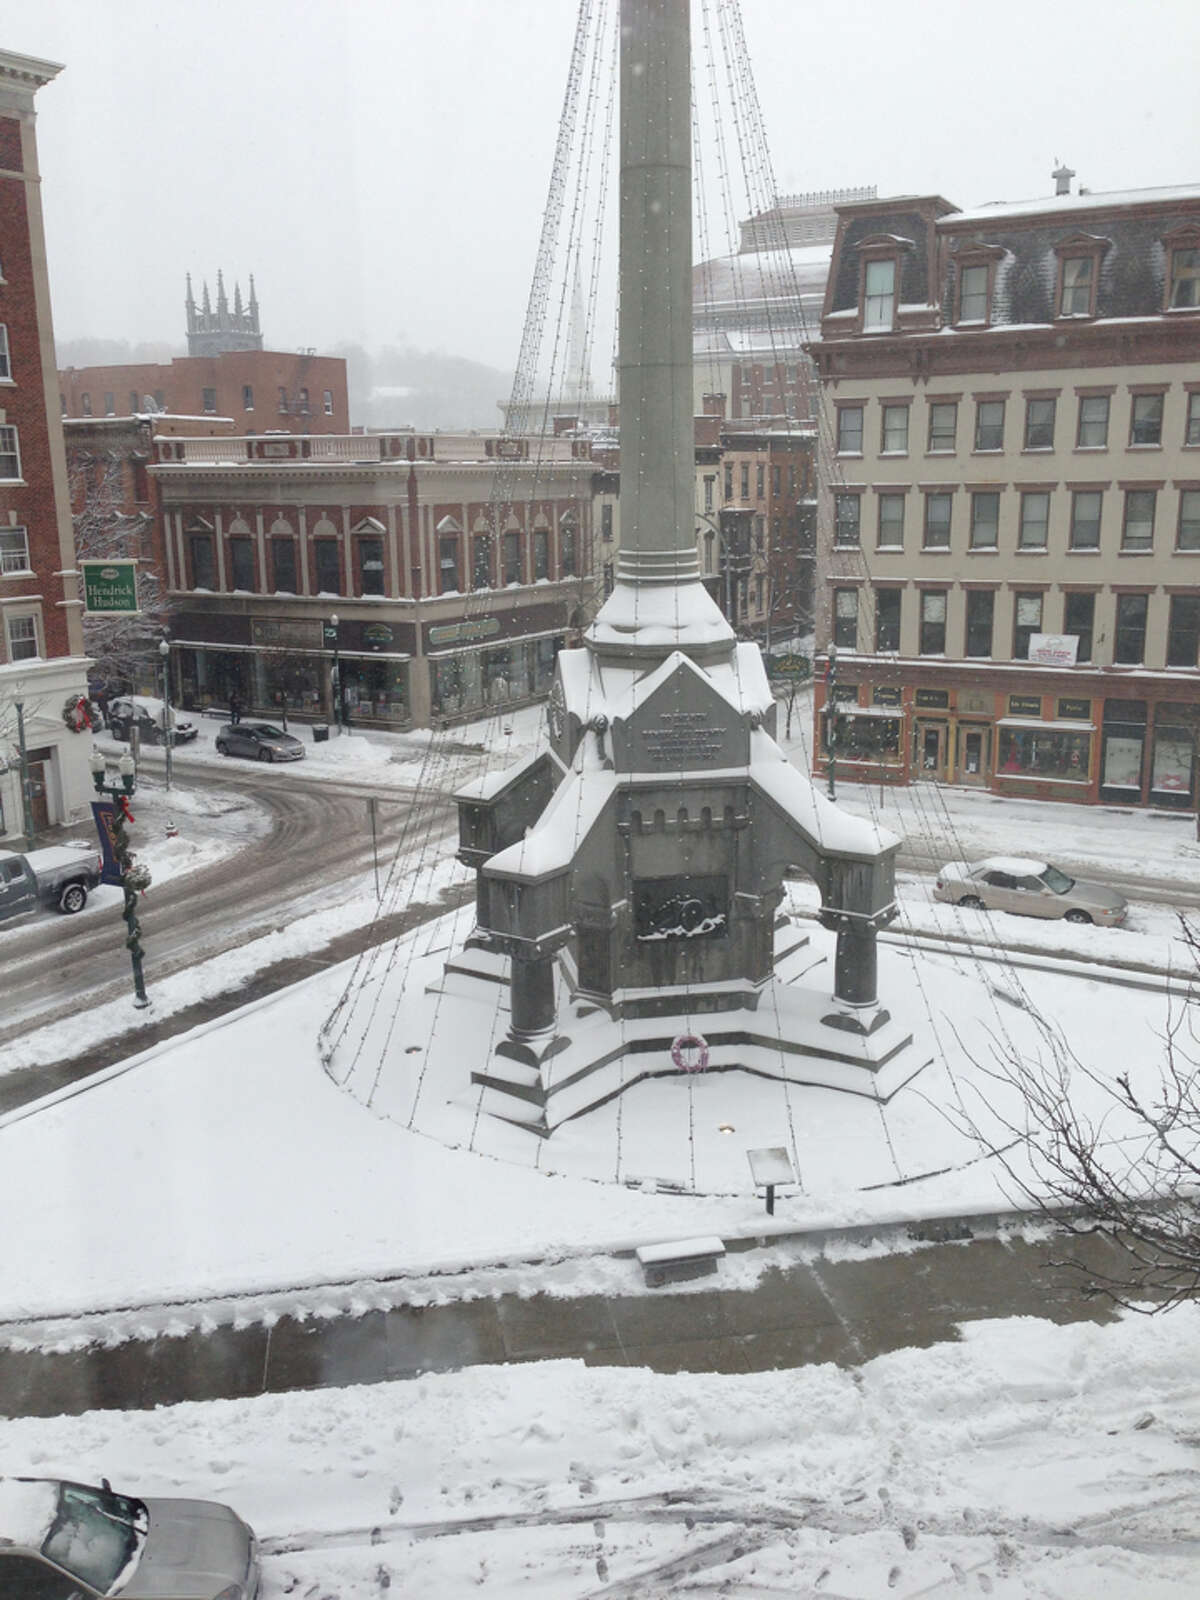 Winter wonderland in downtown Troy. -- Jon Huther